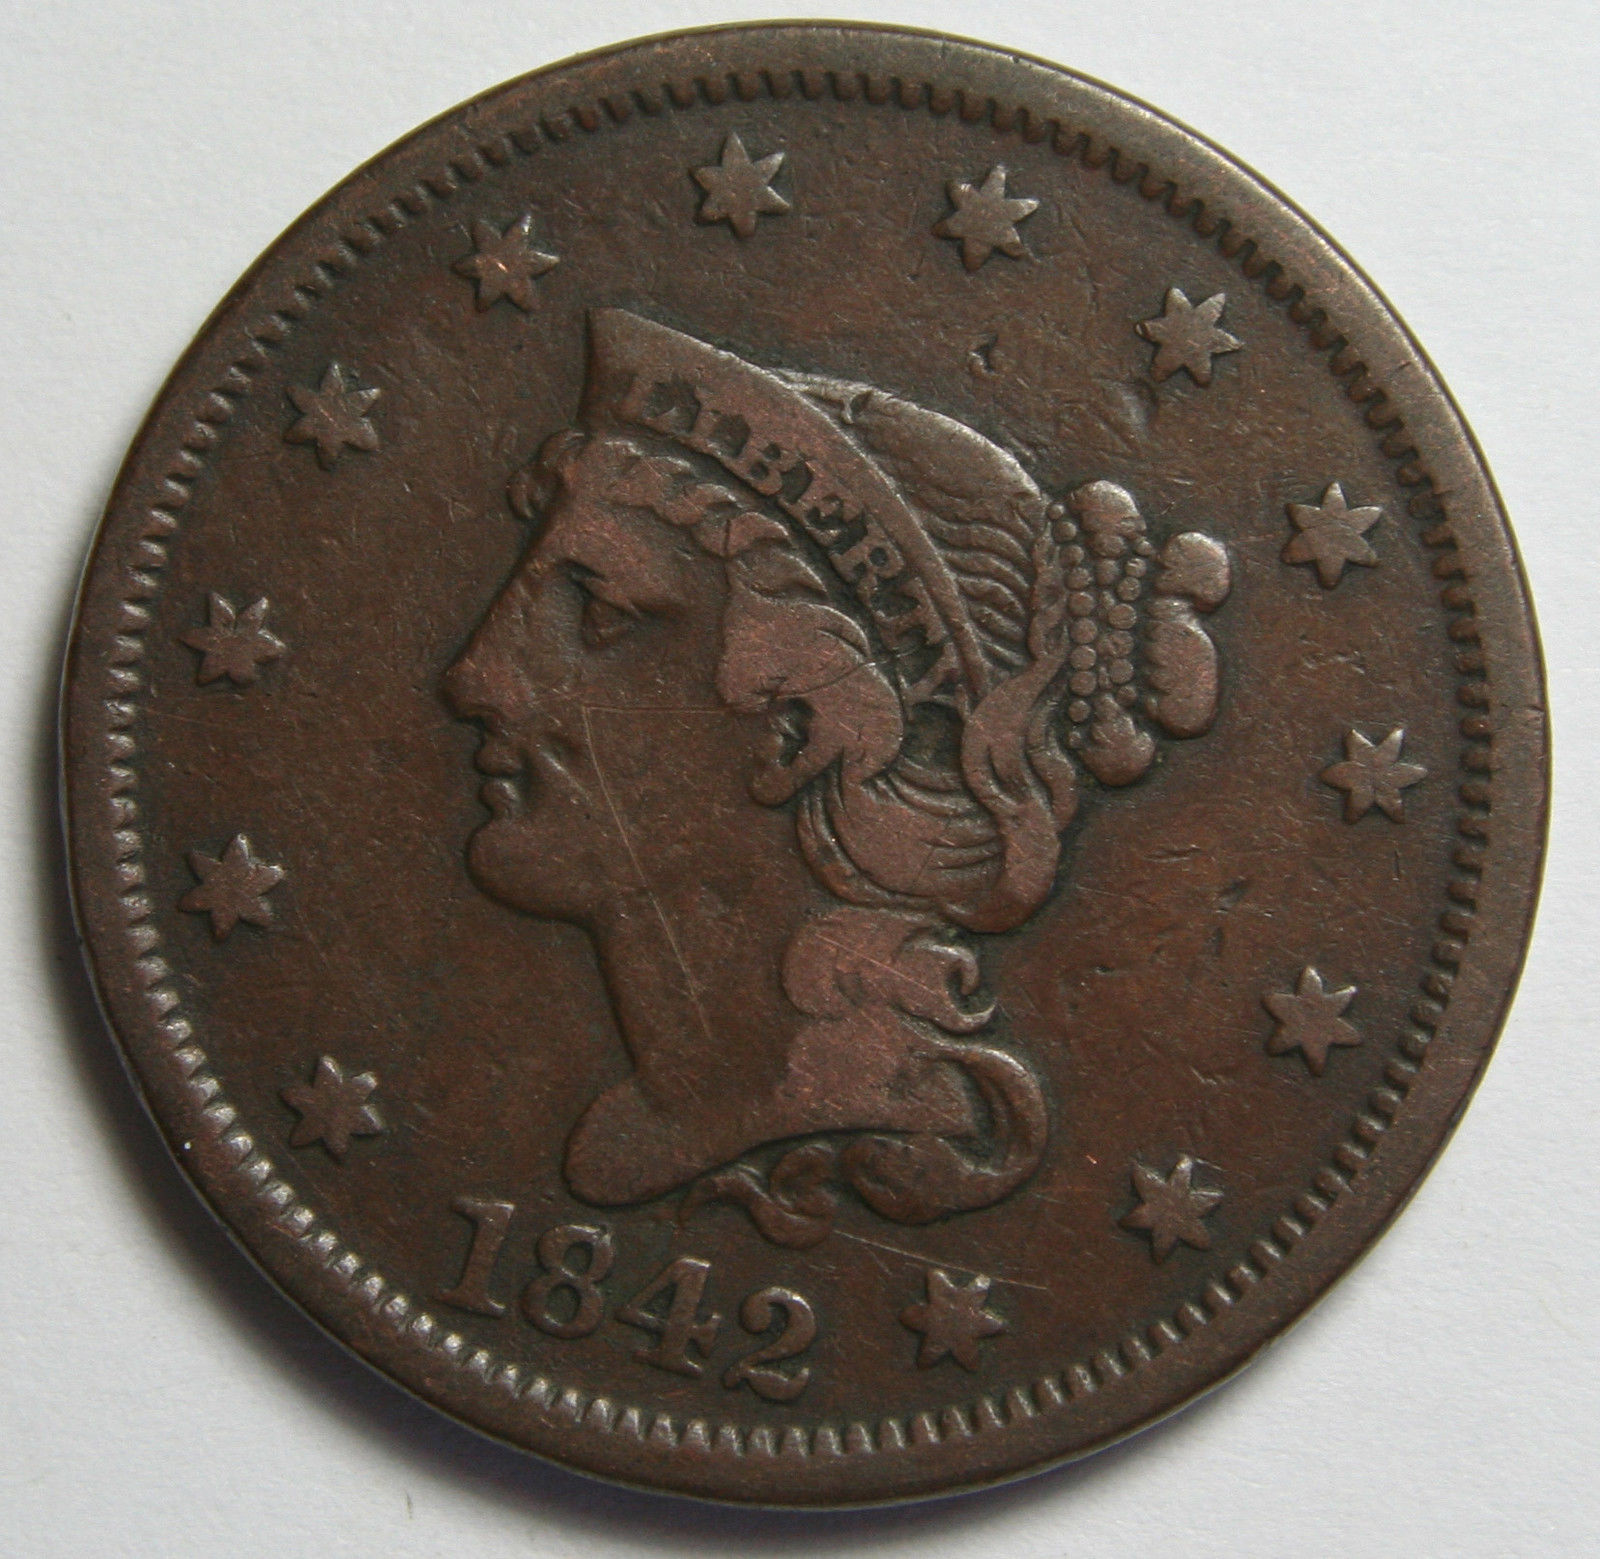 1842 Large Cent Liberty Braided Hair Head Coin Lot # MZ 4092